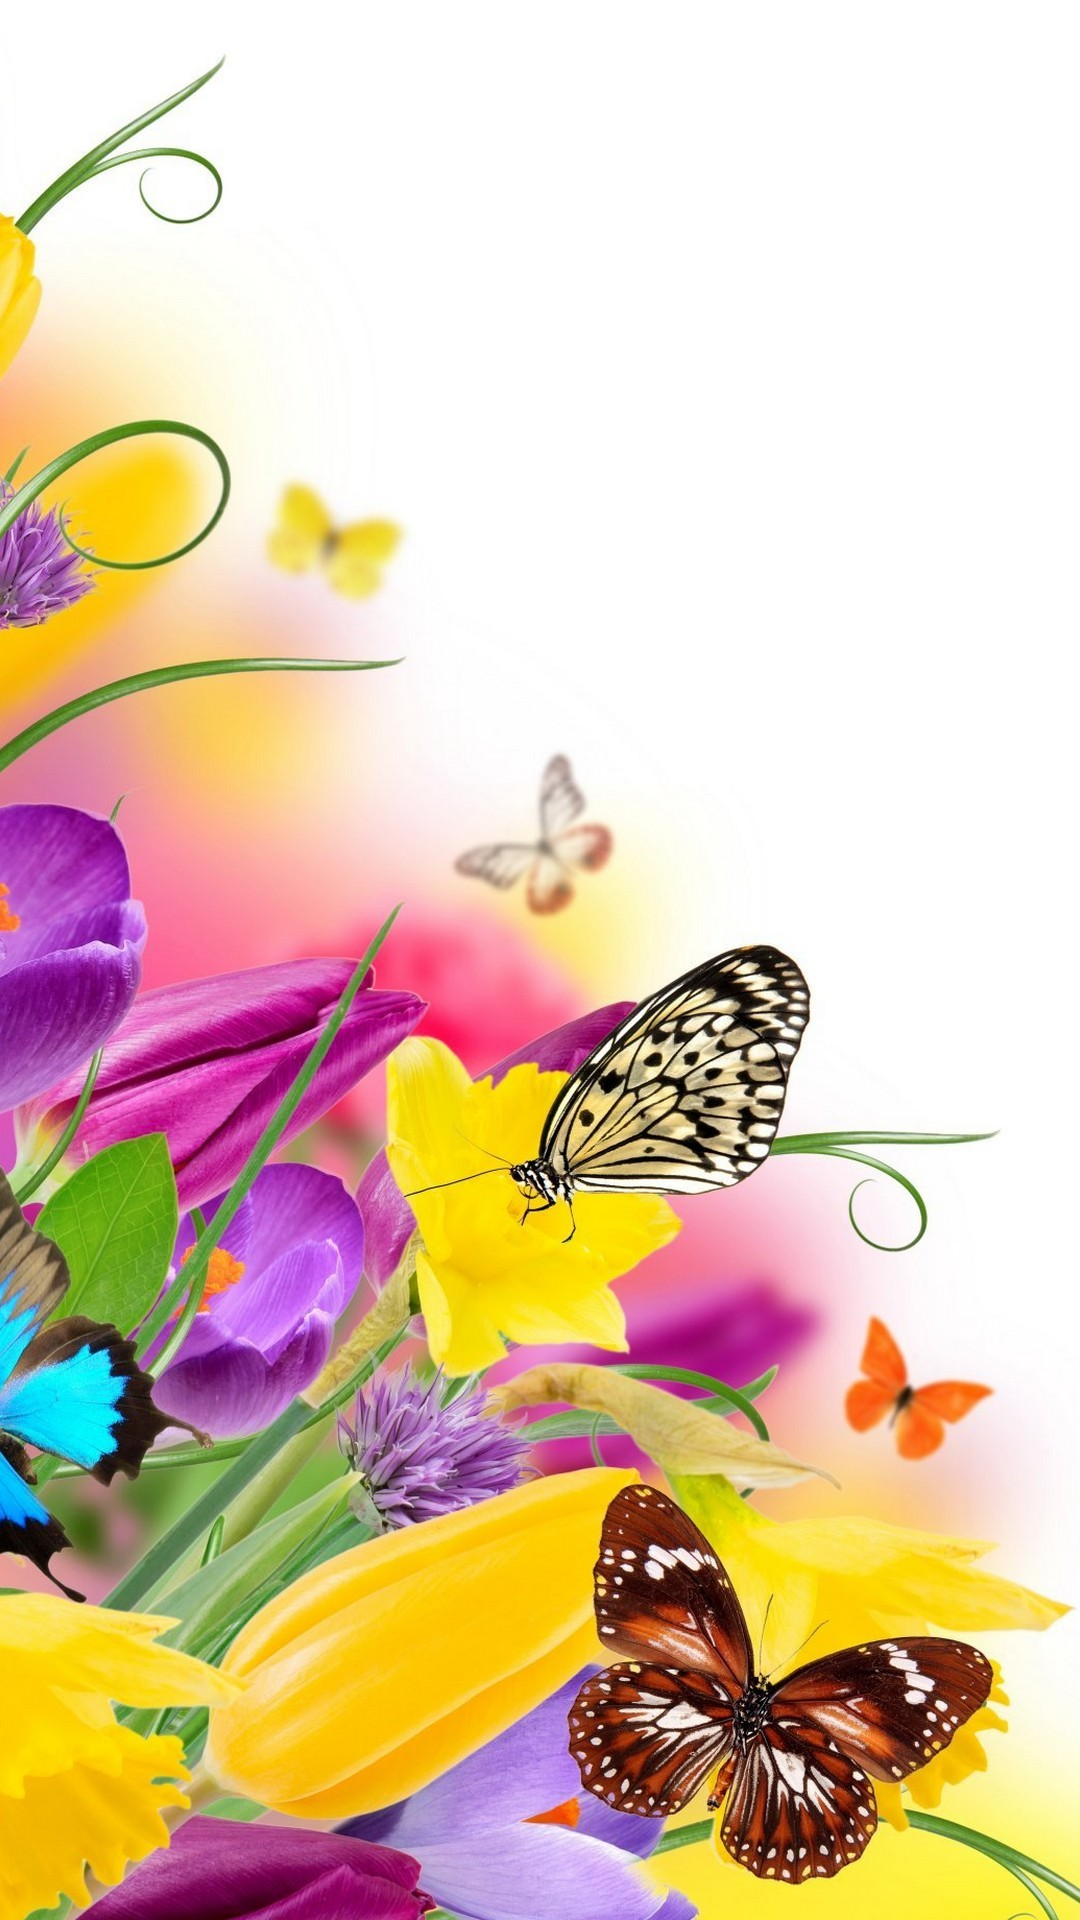 Wallpaper Cute Butterfly Android